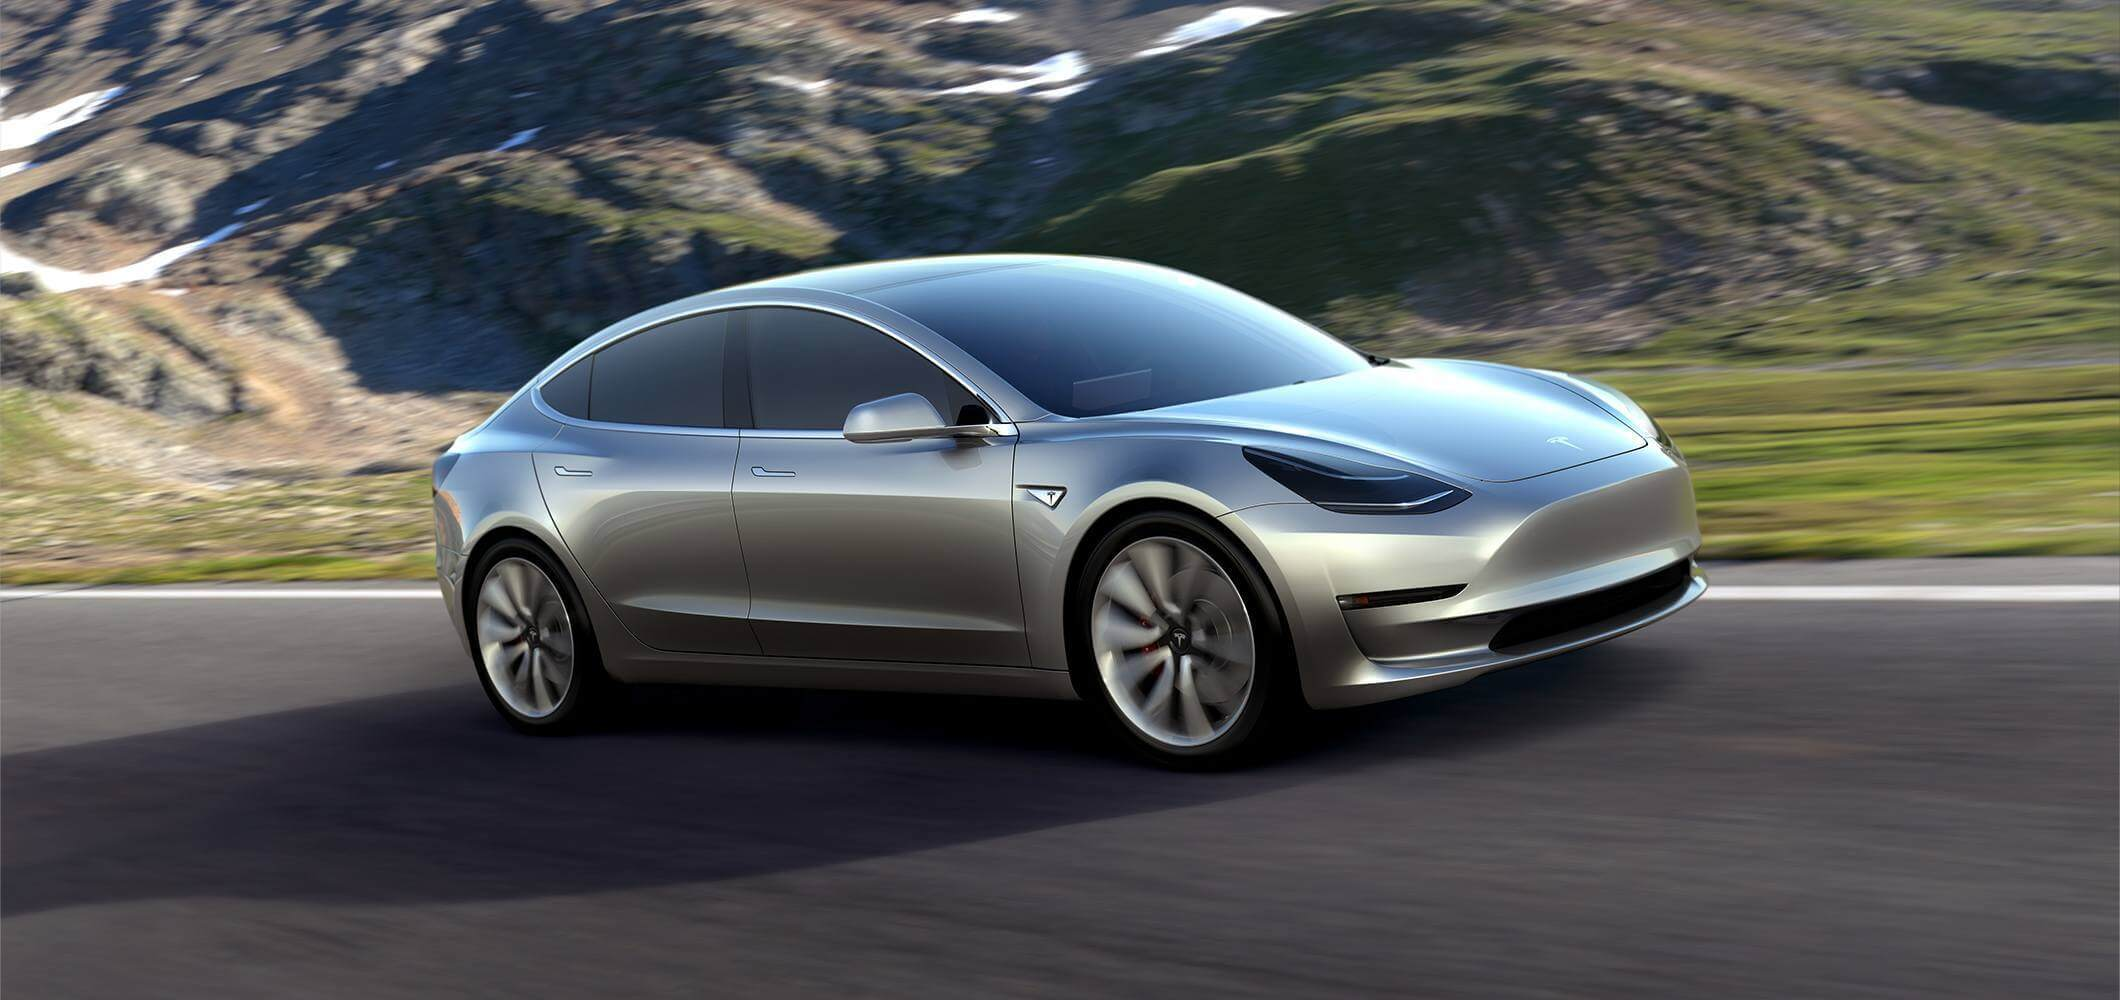 Elon musk finally reveals the number of tesla model 3 reservations inverse